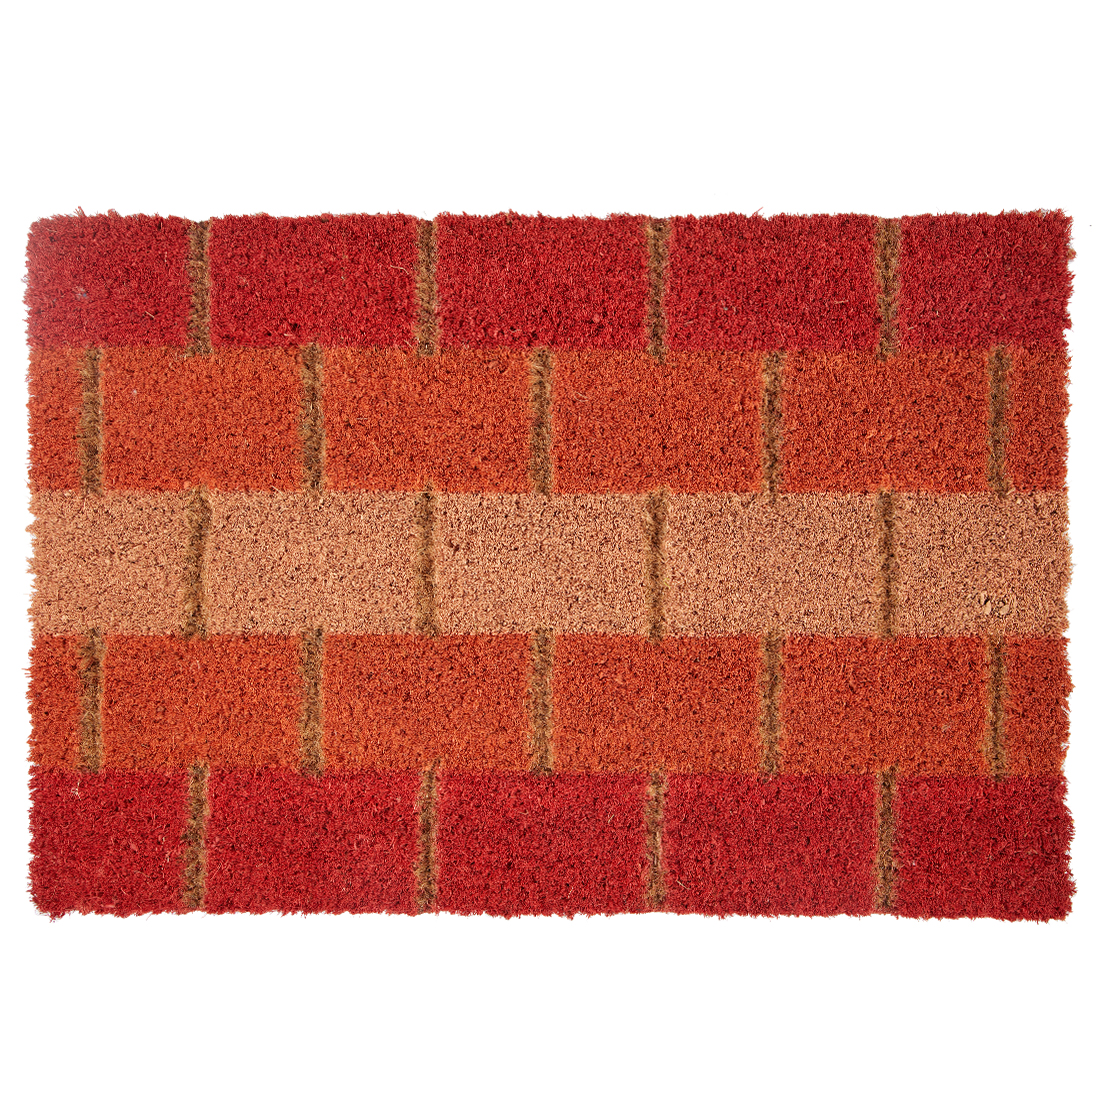 Natura Doormat Brick Rust Door Mats in Brick Rust Colour by Living Essence